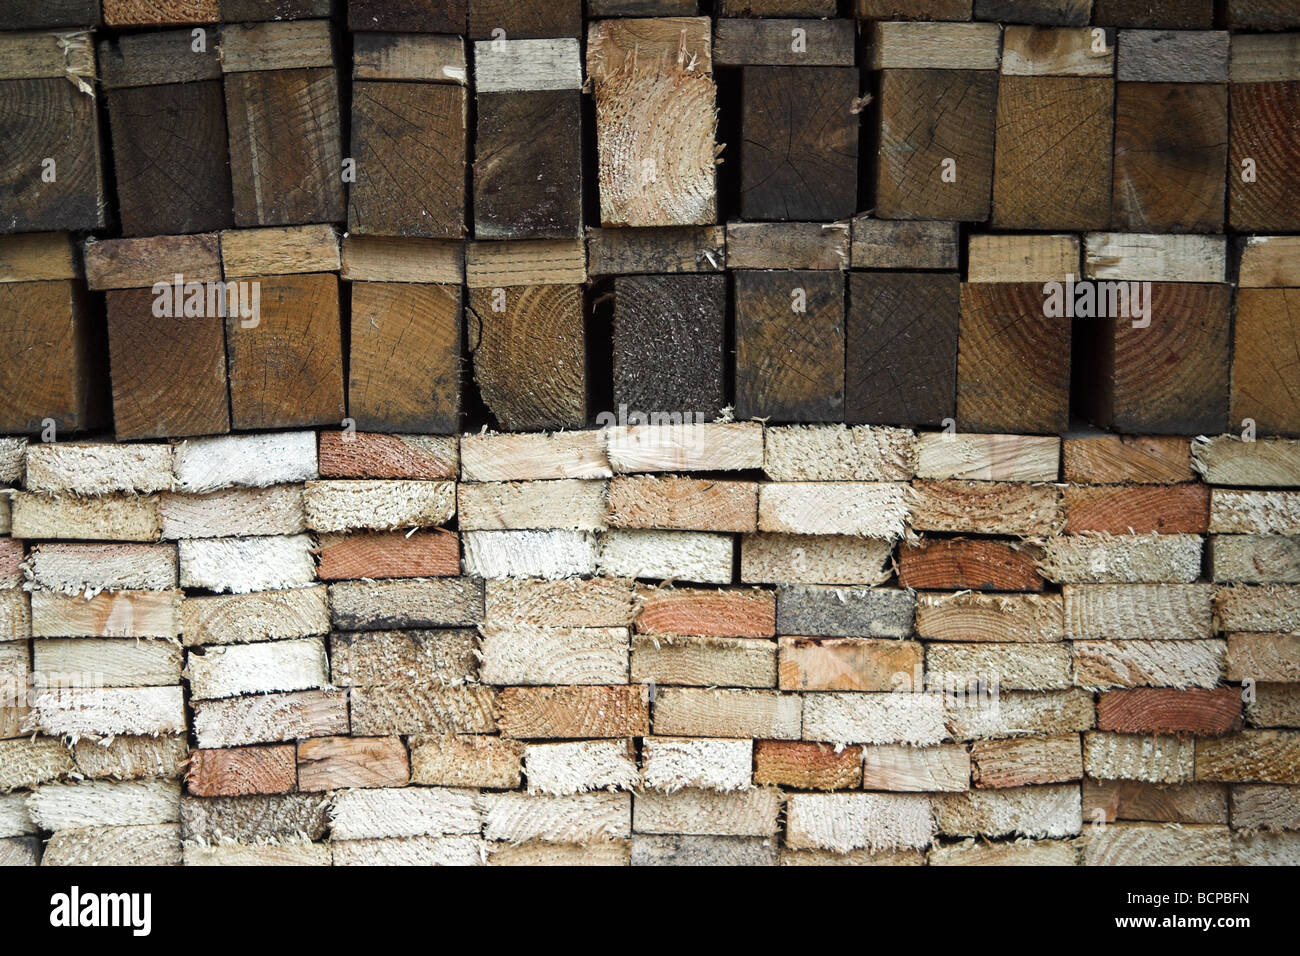 Dismantled pallets cut up and stored for use in a wood burning stove. - Stock Image